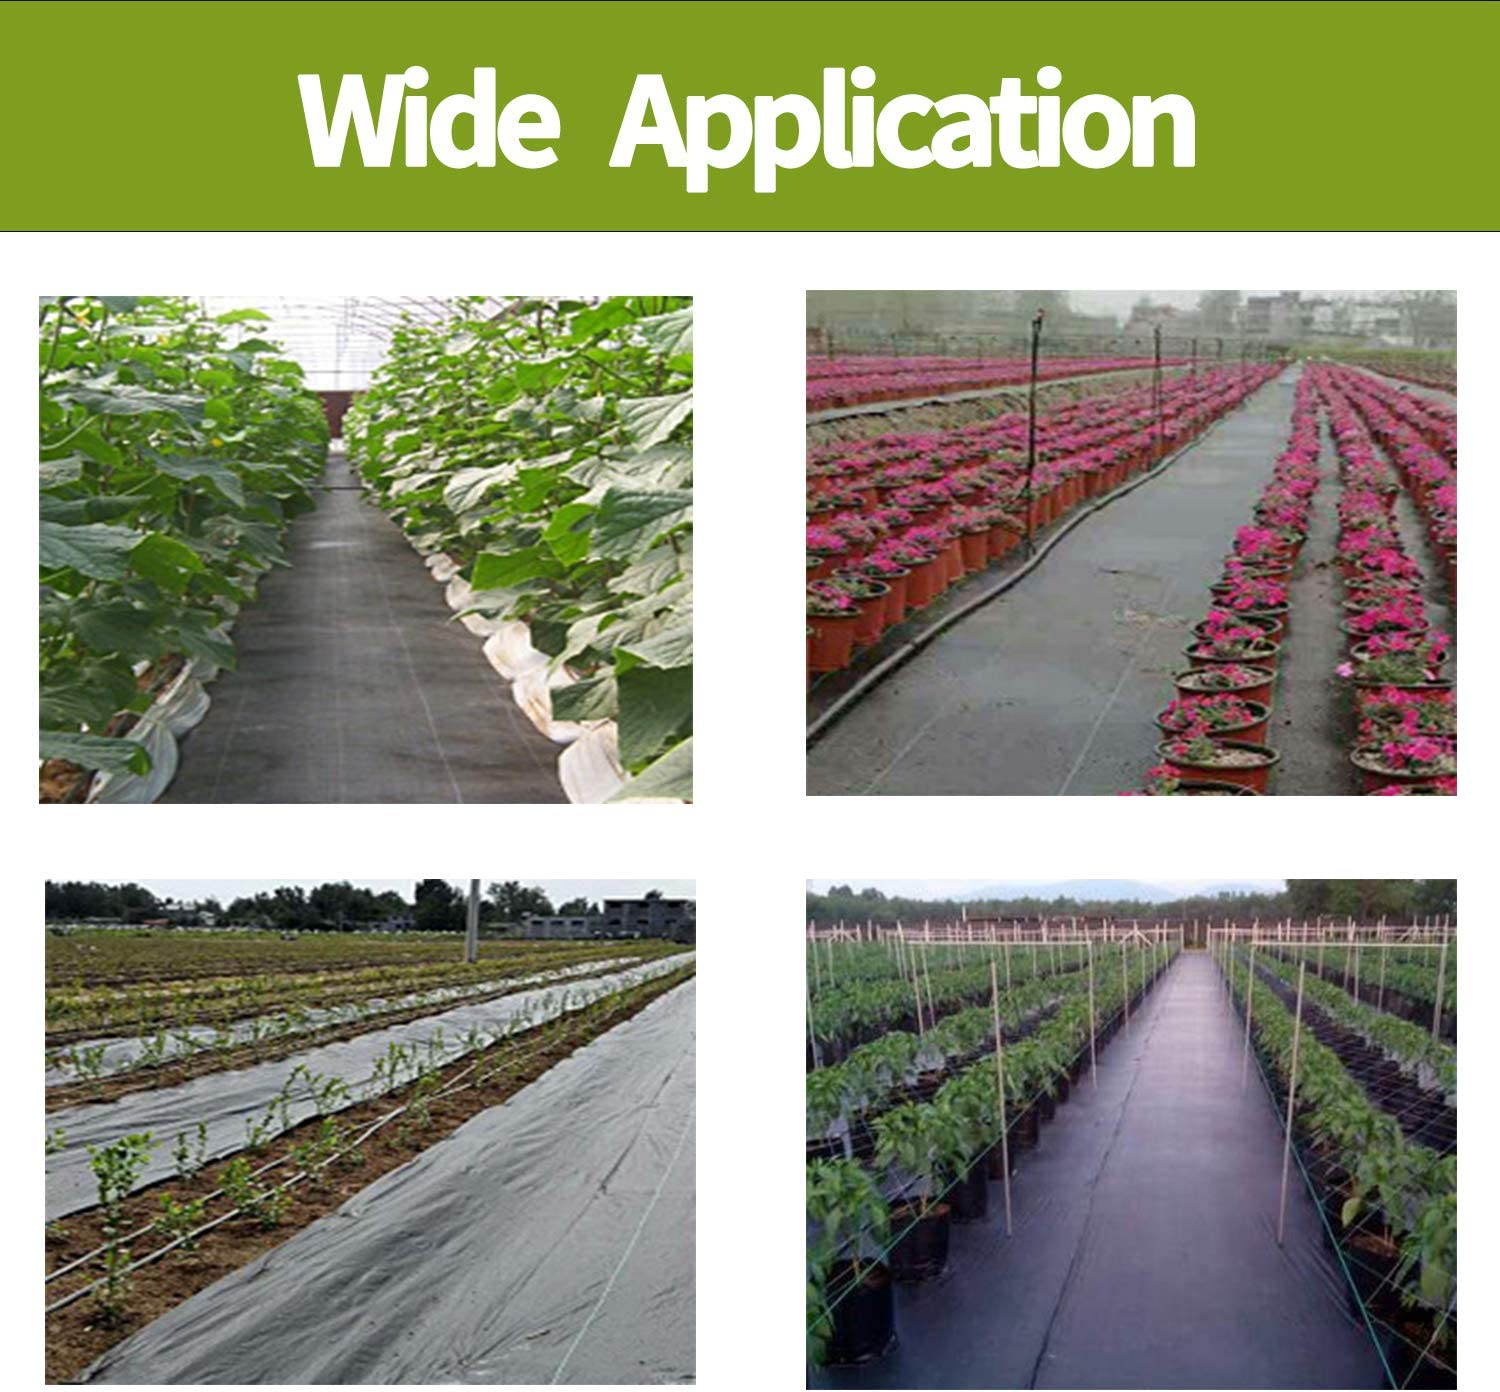 NONMON 2mx20m Weed Control Fabric,100gsm Heavy Duty Weed Barrier,Black Landscape Garden Ground Cover Membrane